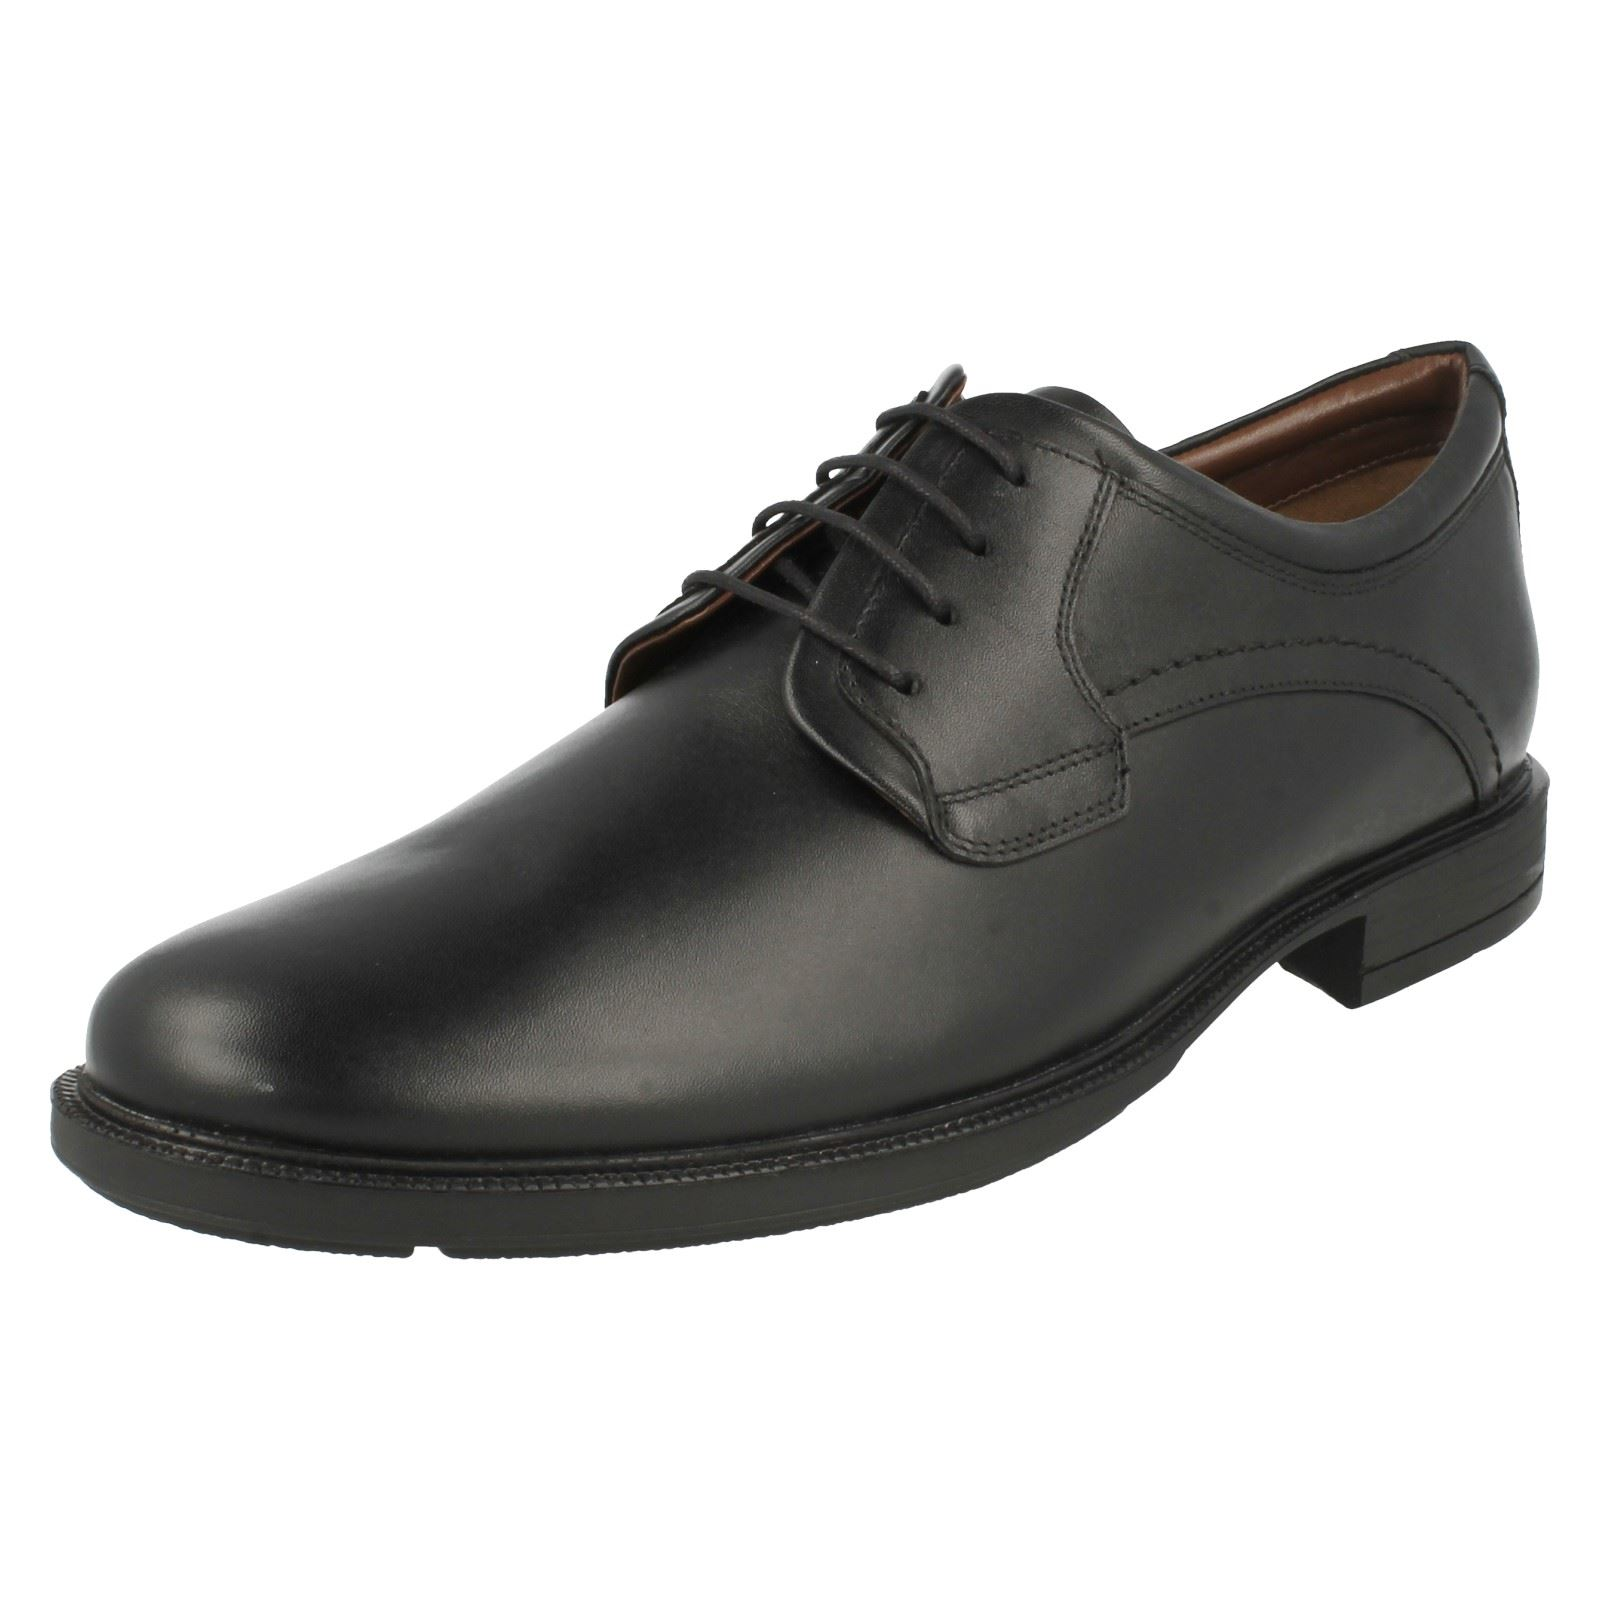 Herren Hush Puppies Schuhe michigan 3